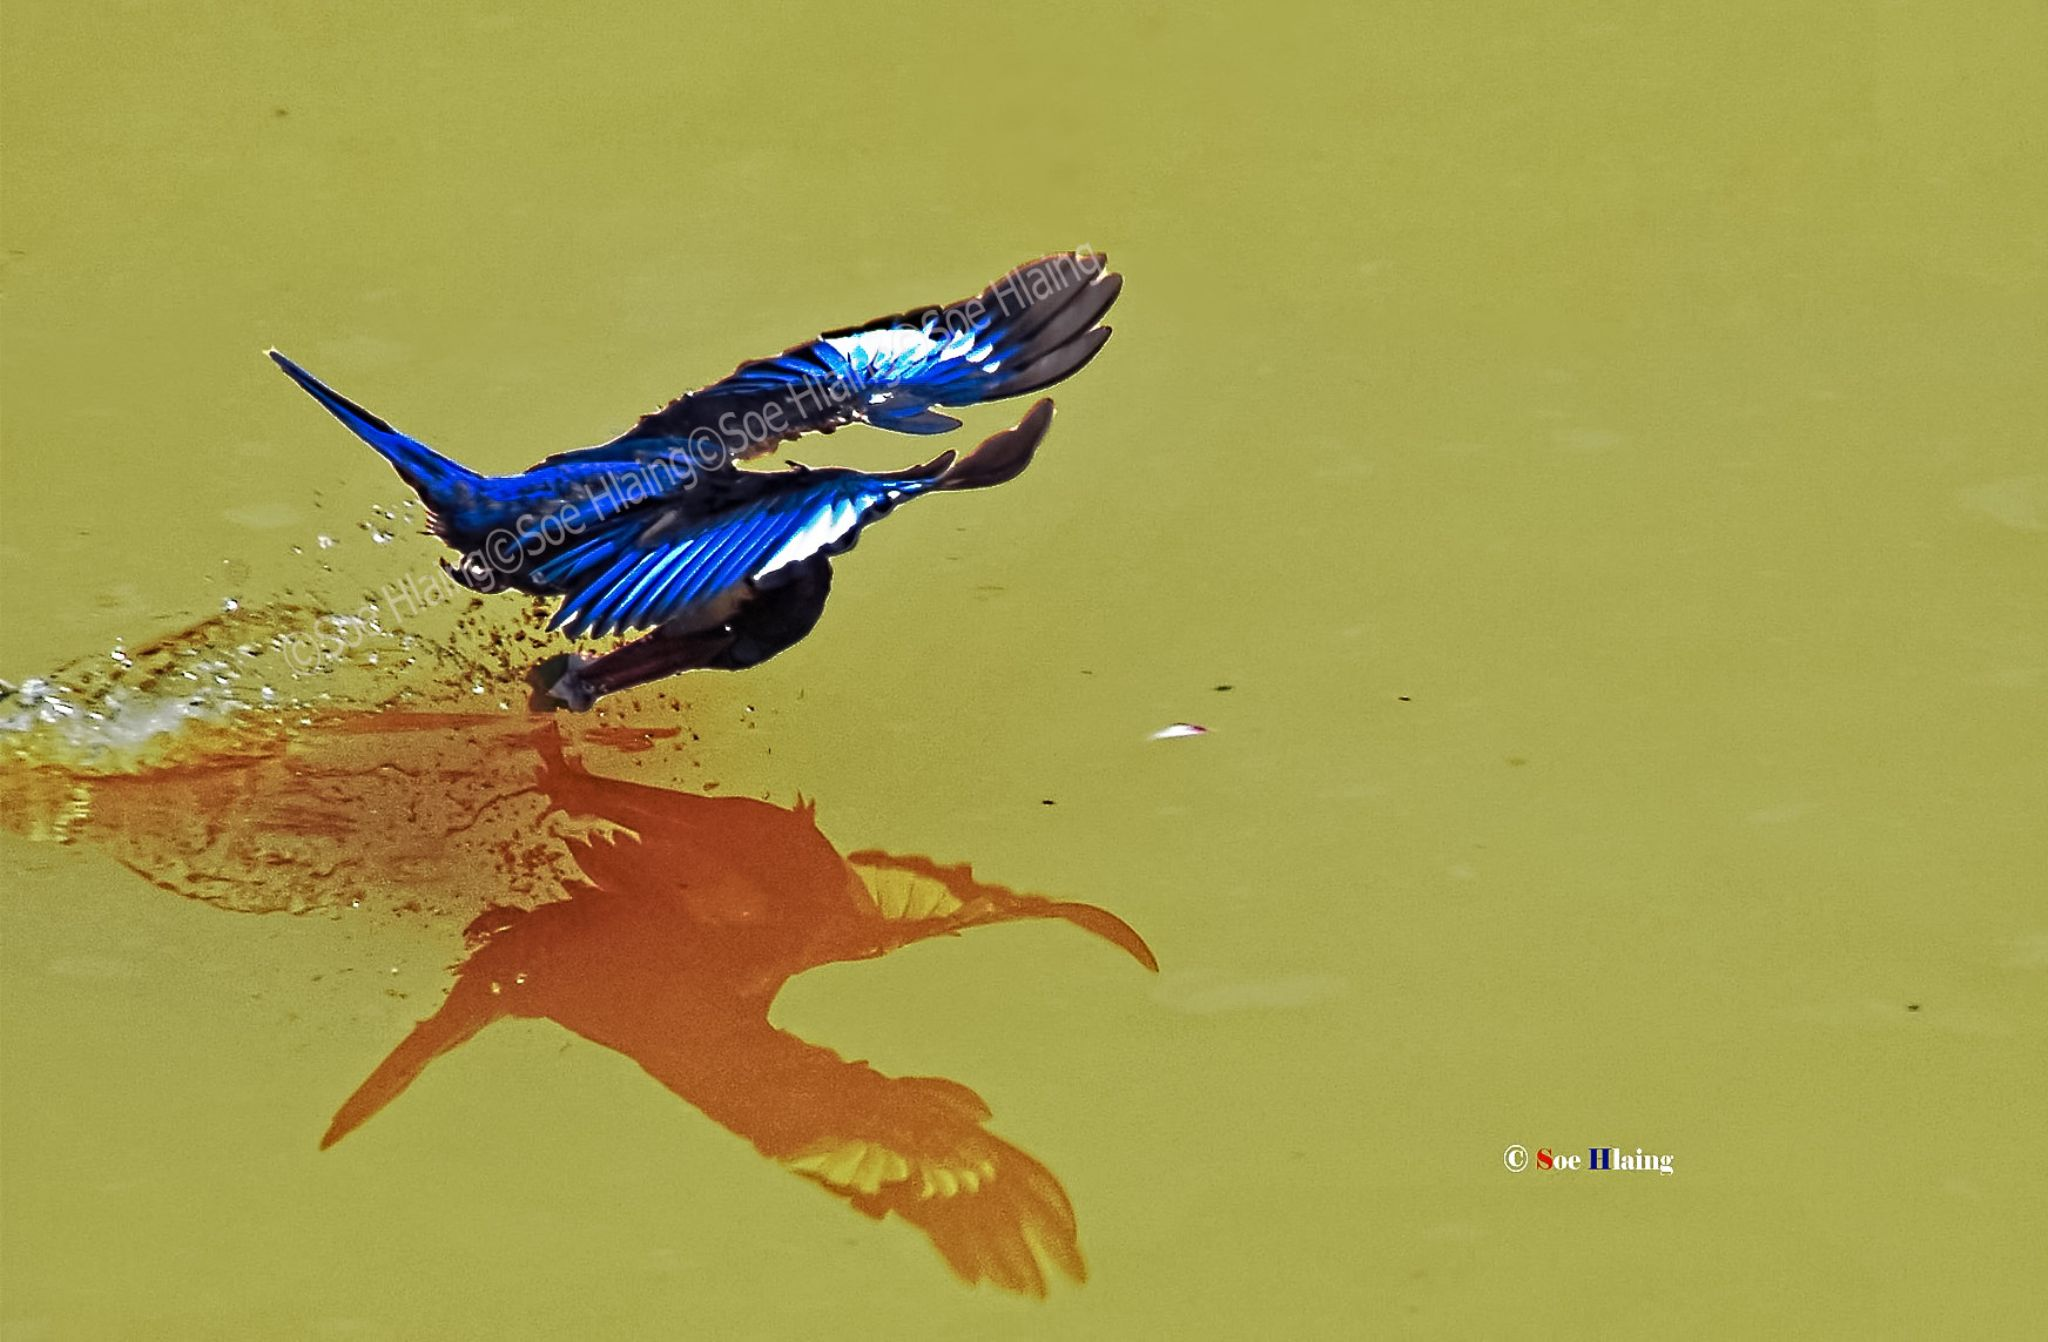 Skipping over Water. by SoeHlaing